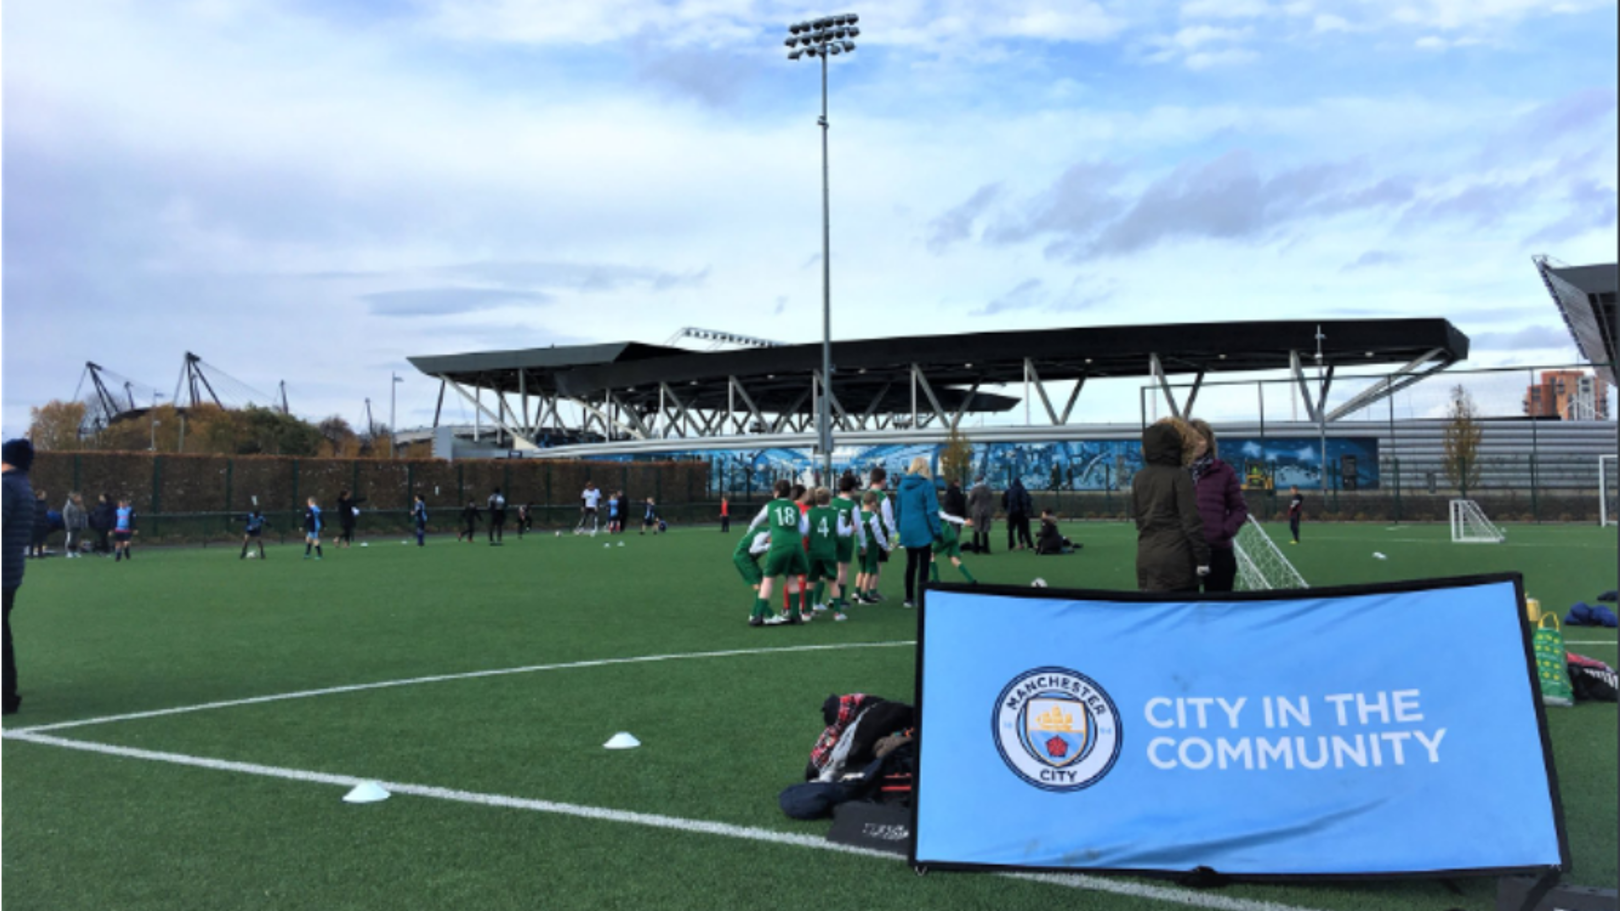 CITC hosts One Disability Sports tournament